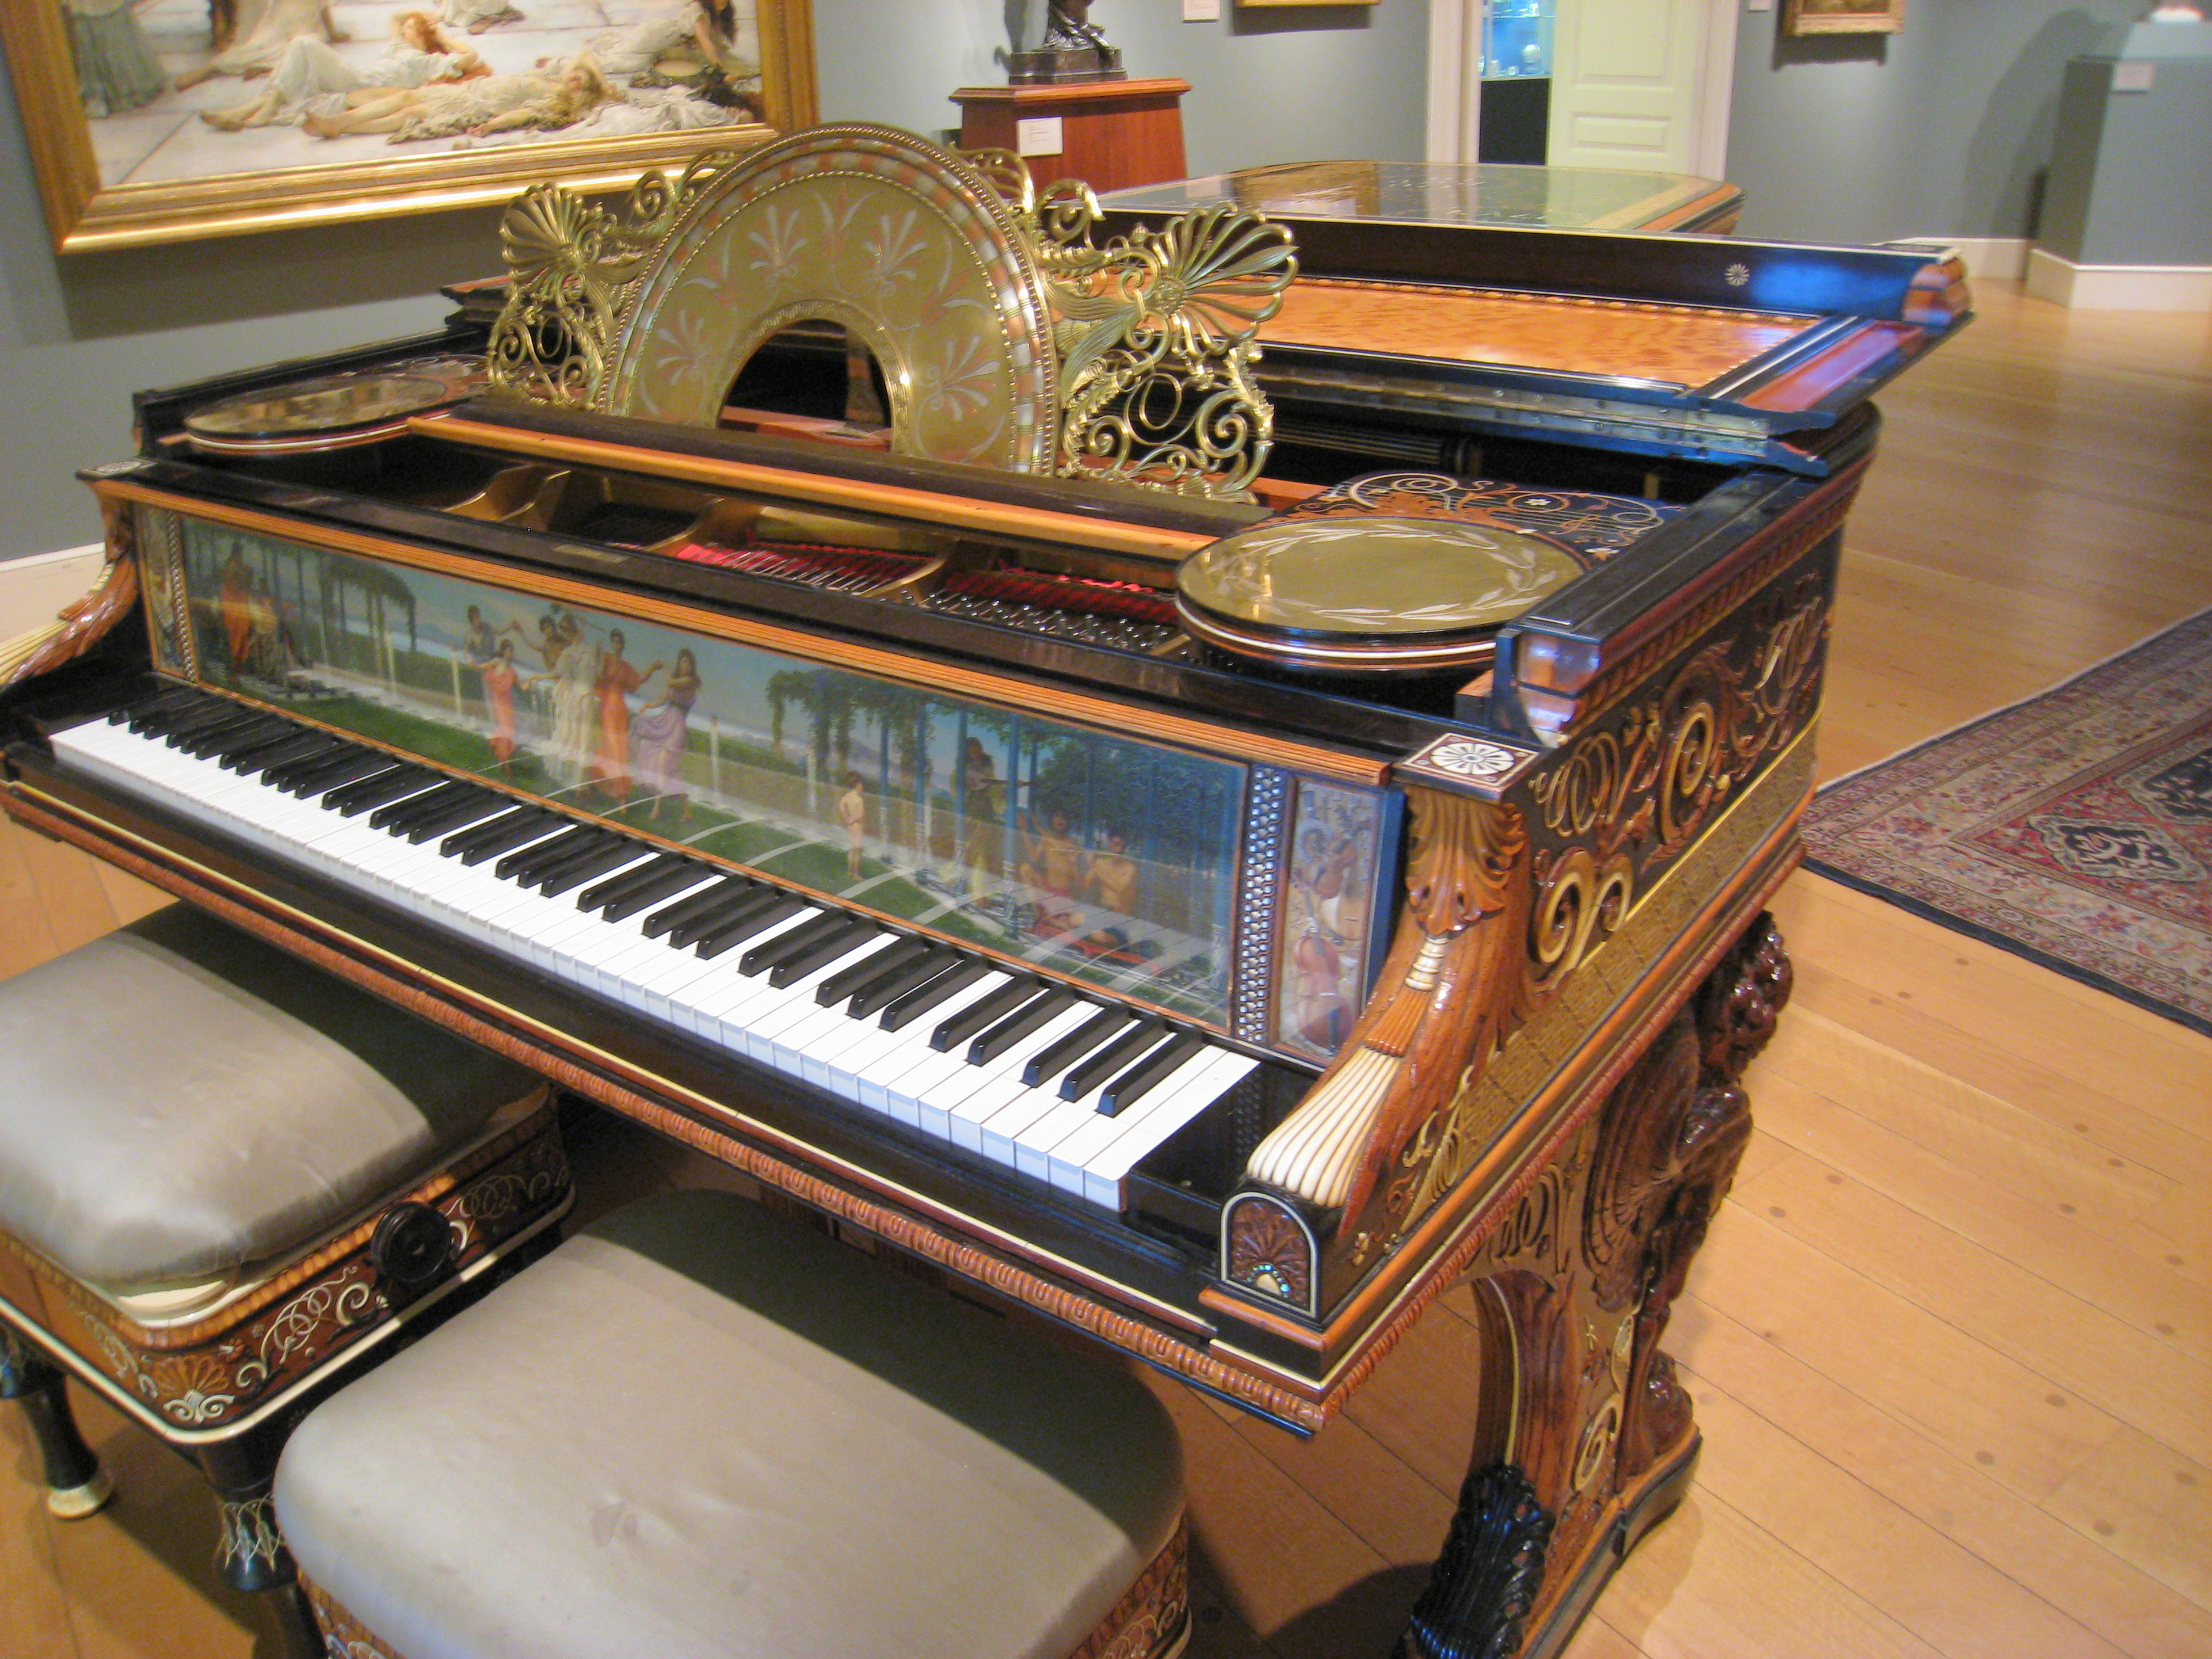 File:Clark Art Institute - piano a.JPG - Wikimedia Commons